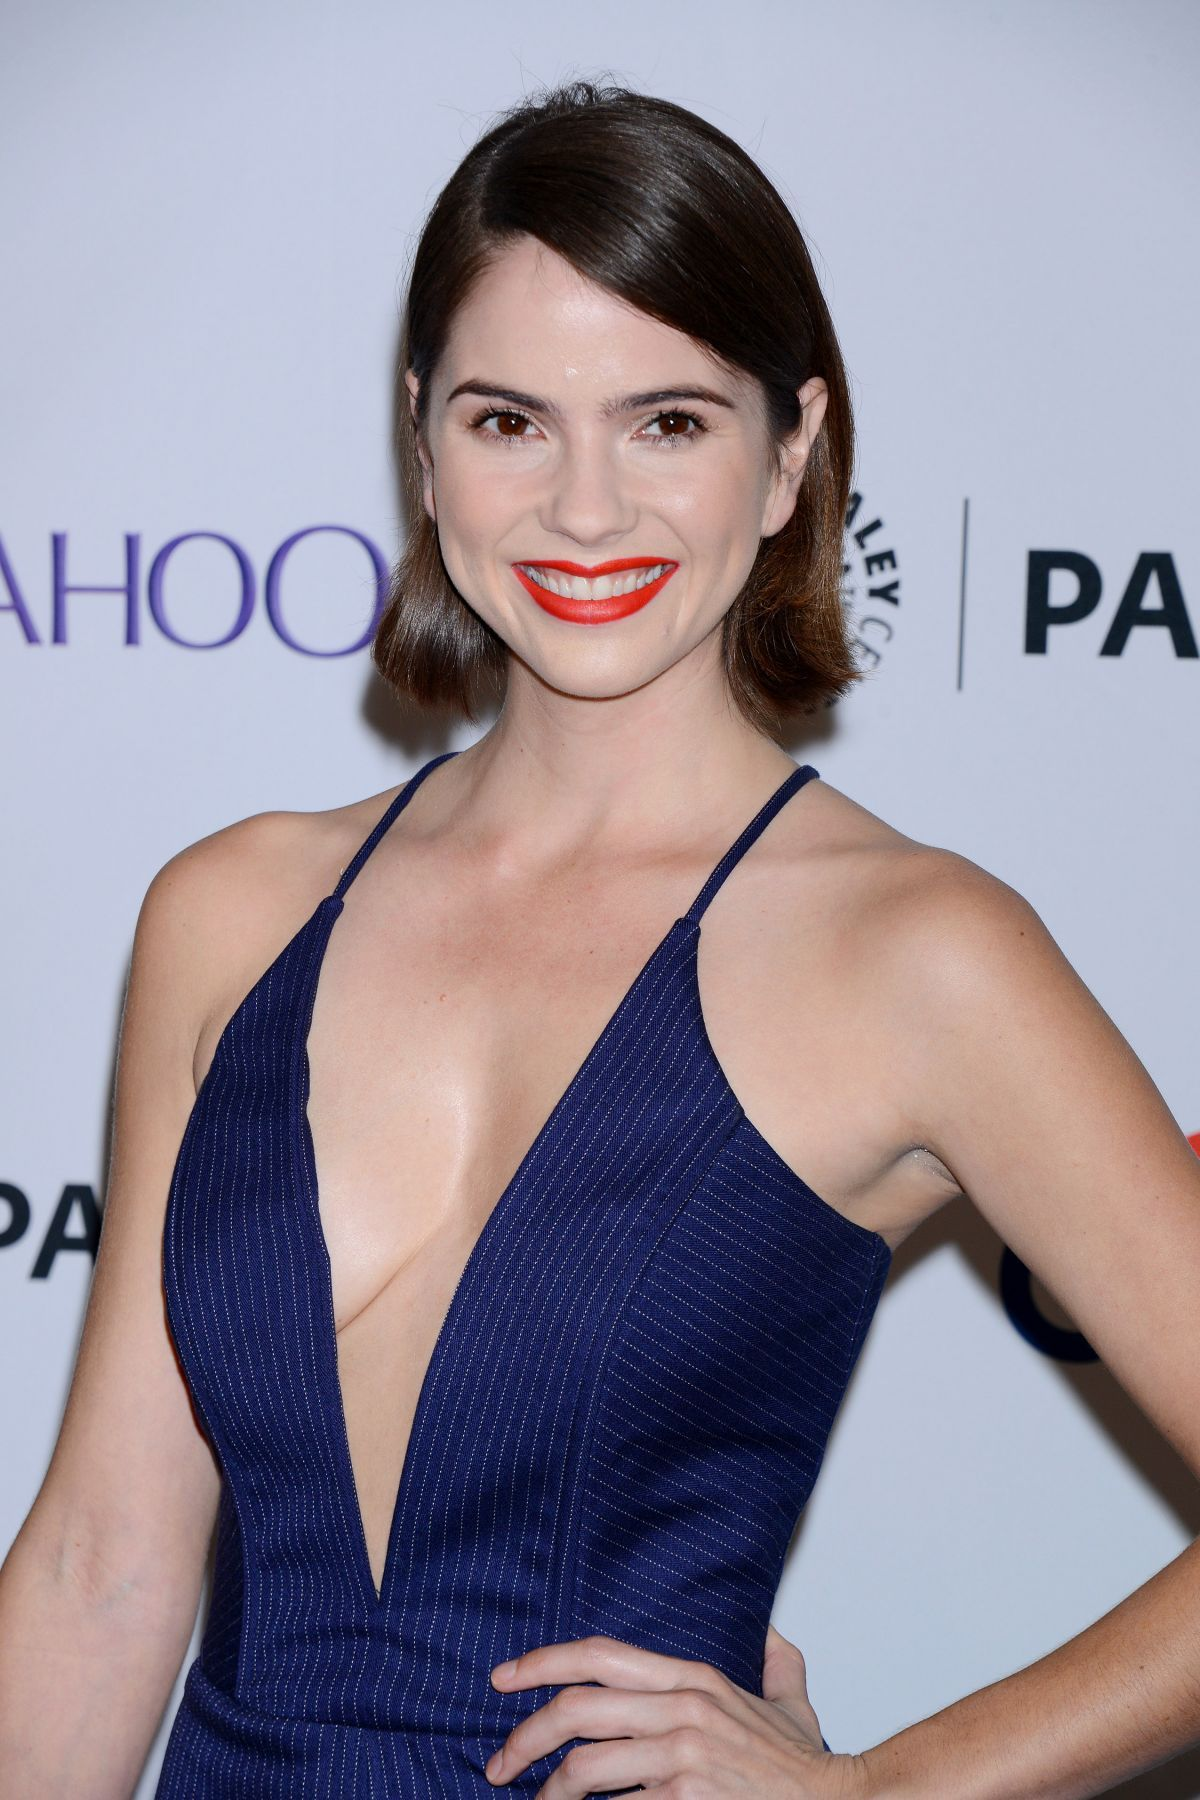 Shelley Hennig Archives - Page 2 of 2 - HawtCelebs - HawtCelebs